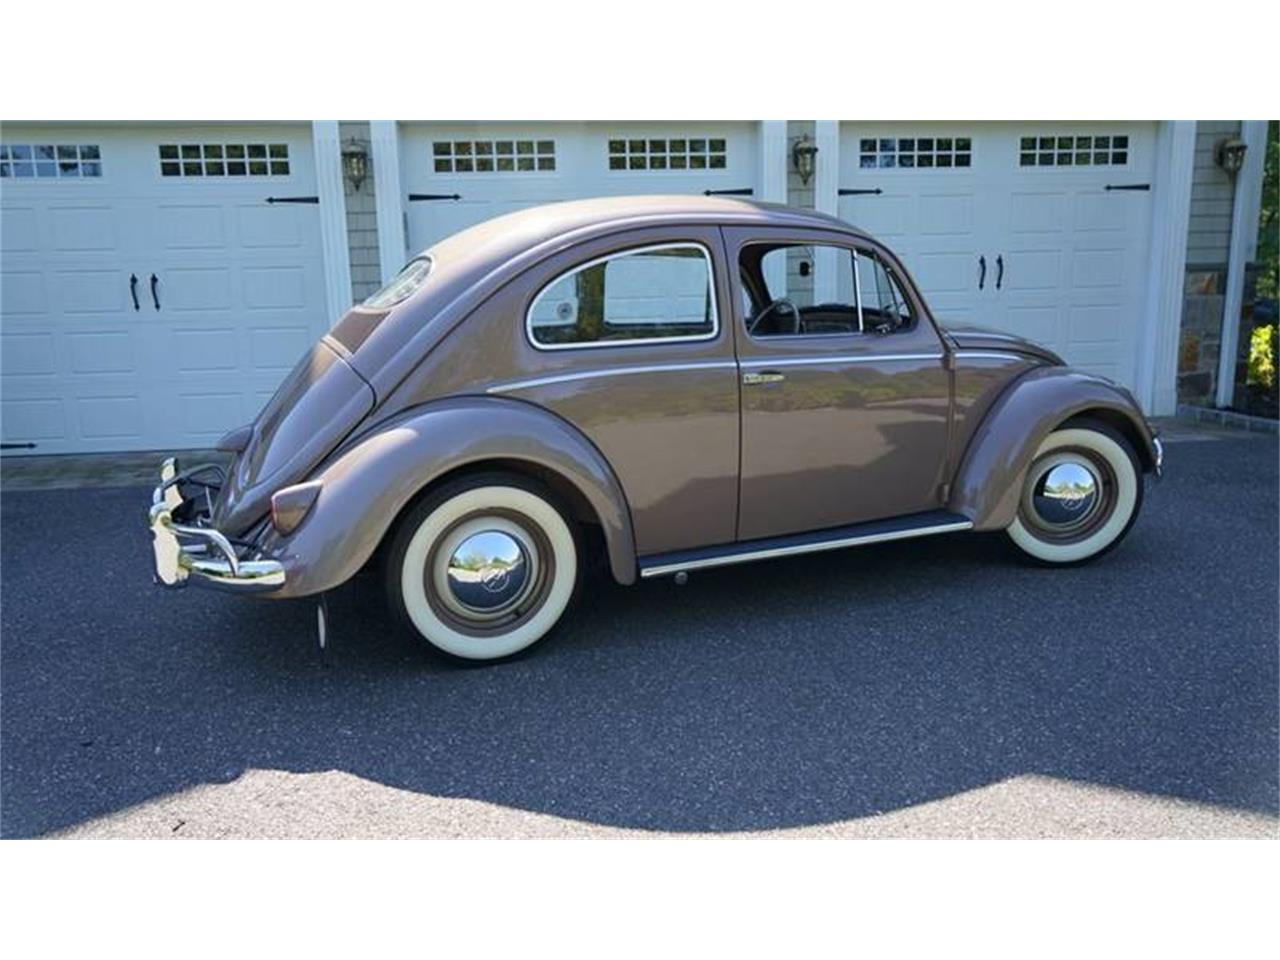 Large Picture of '55 Volkswagen Beetle located in New York - $37,500.00 - OVOE